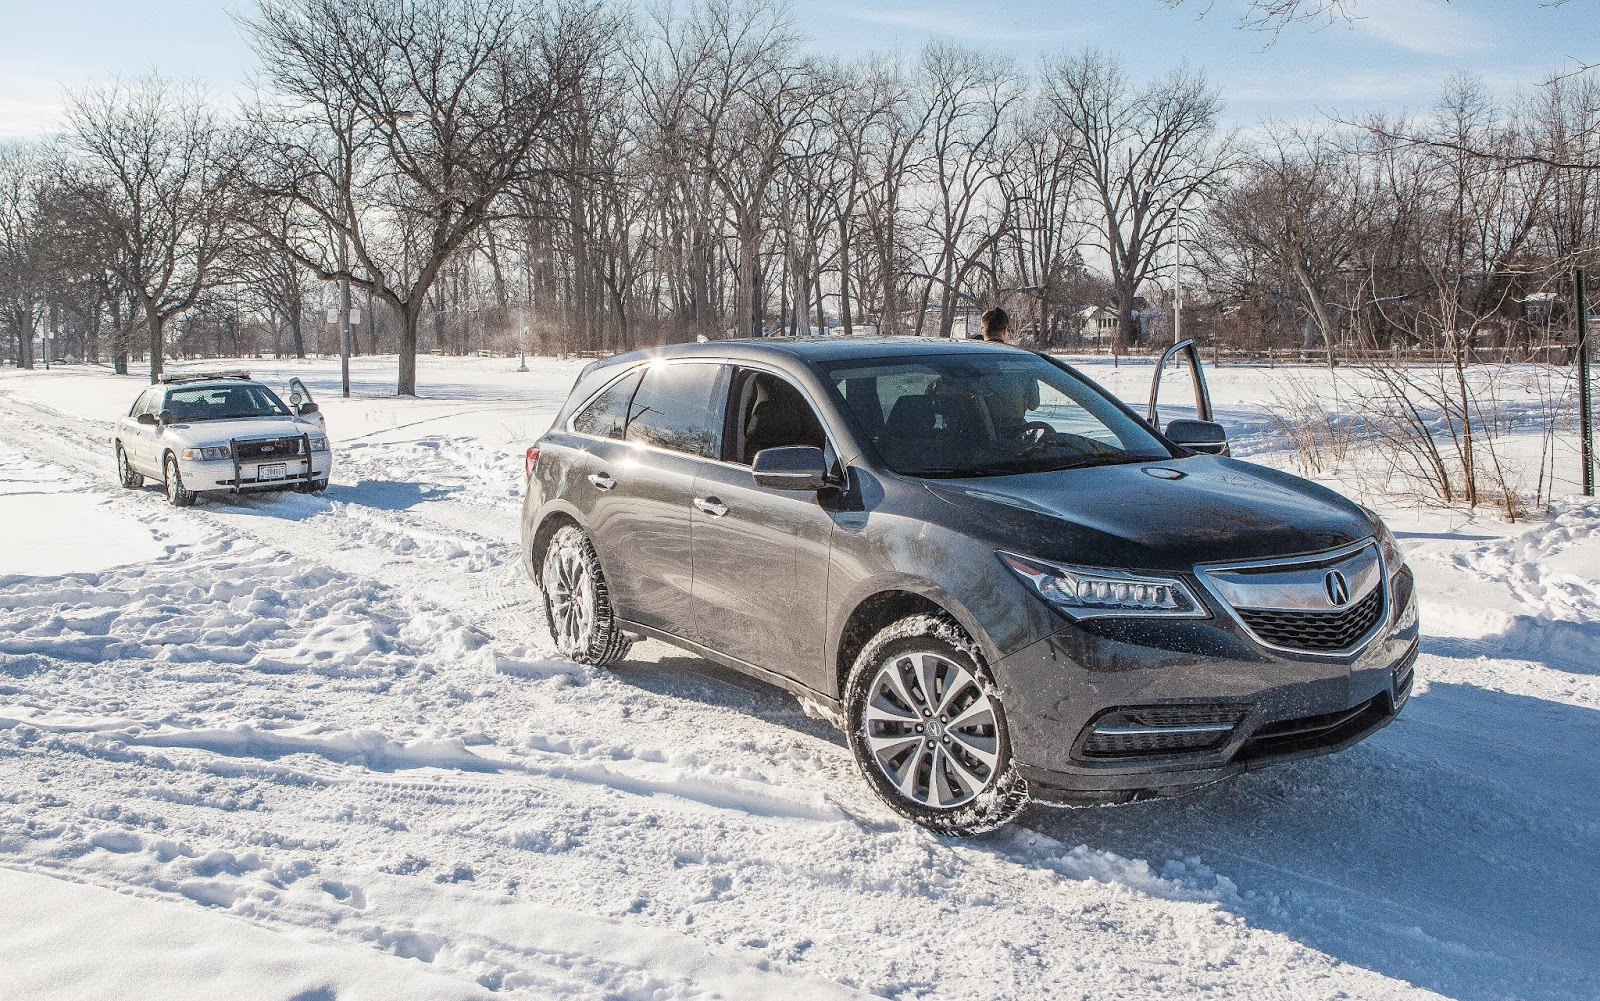 Us Border Patrol Could Not Believe That Their Vehicle Outperform The Mdx In Deep Snow As Stated Previously I Used Usually Florida Where We